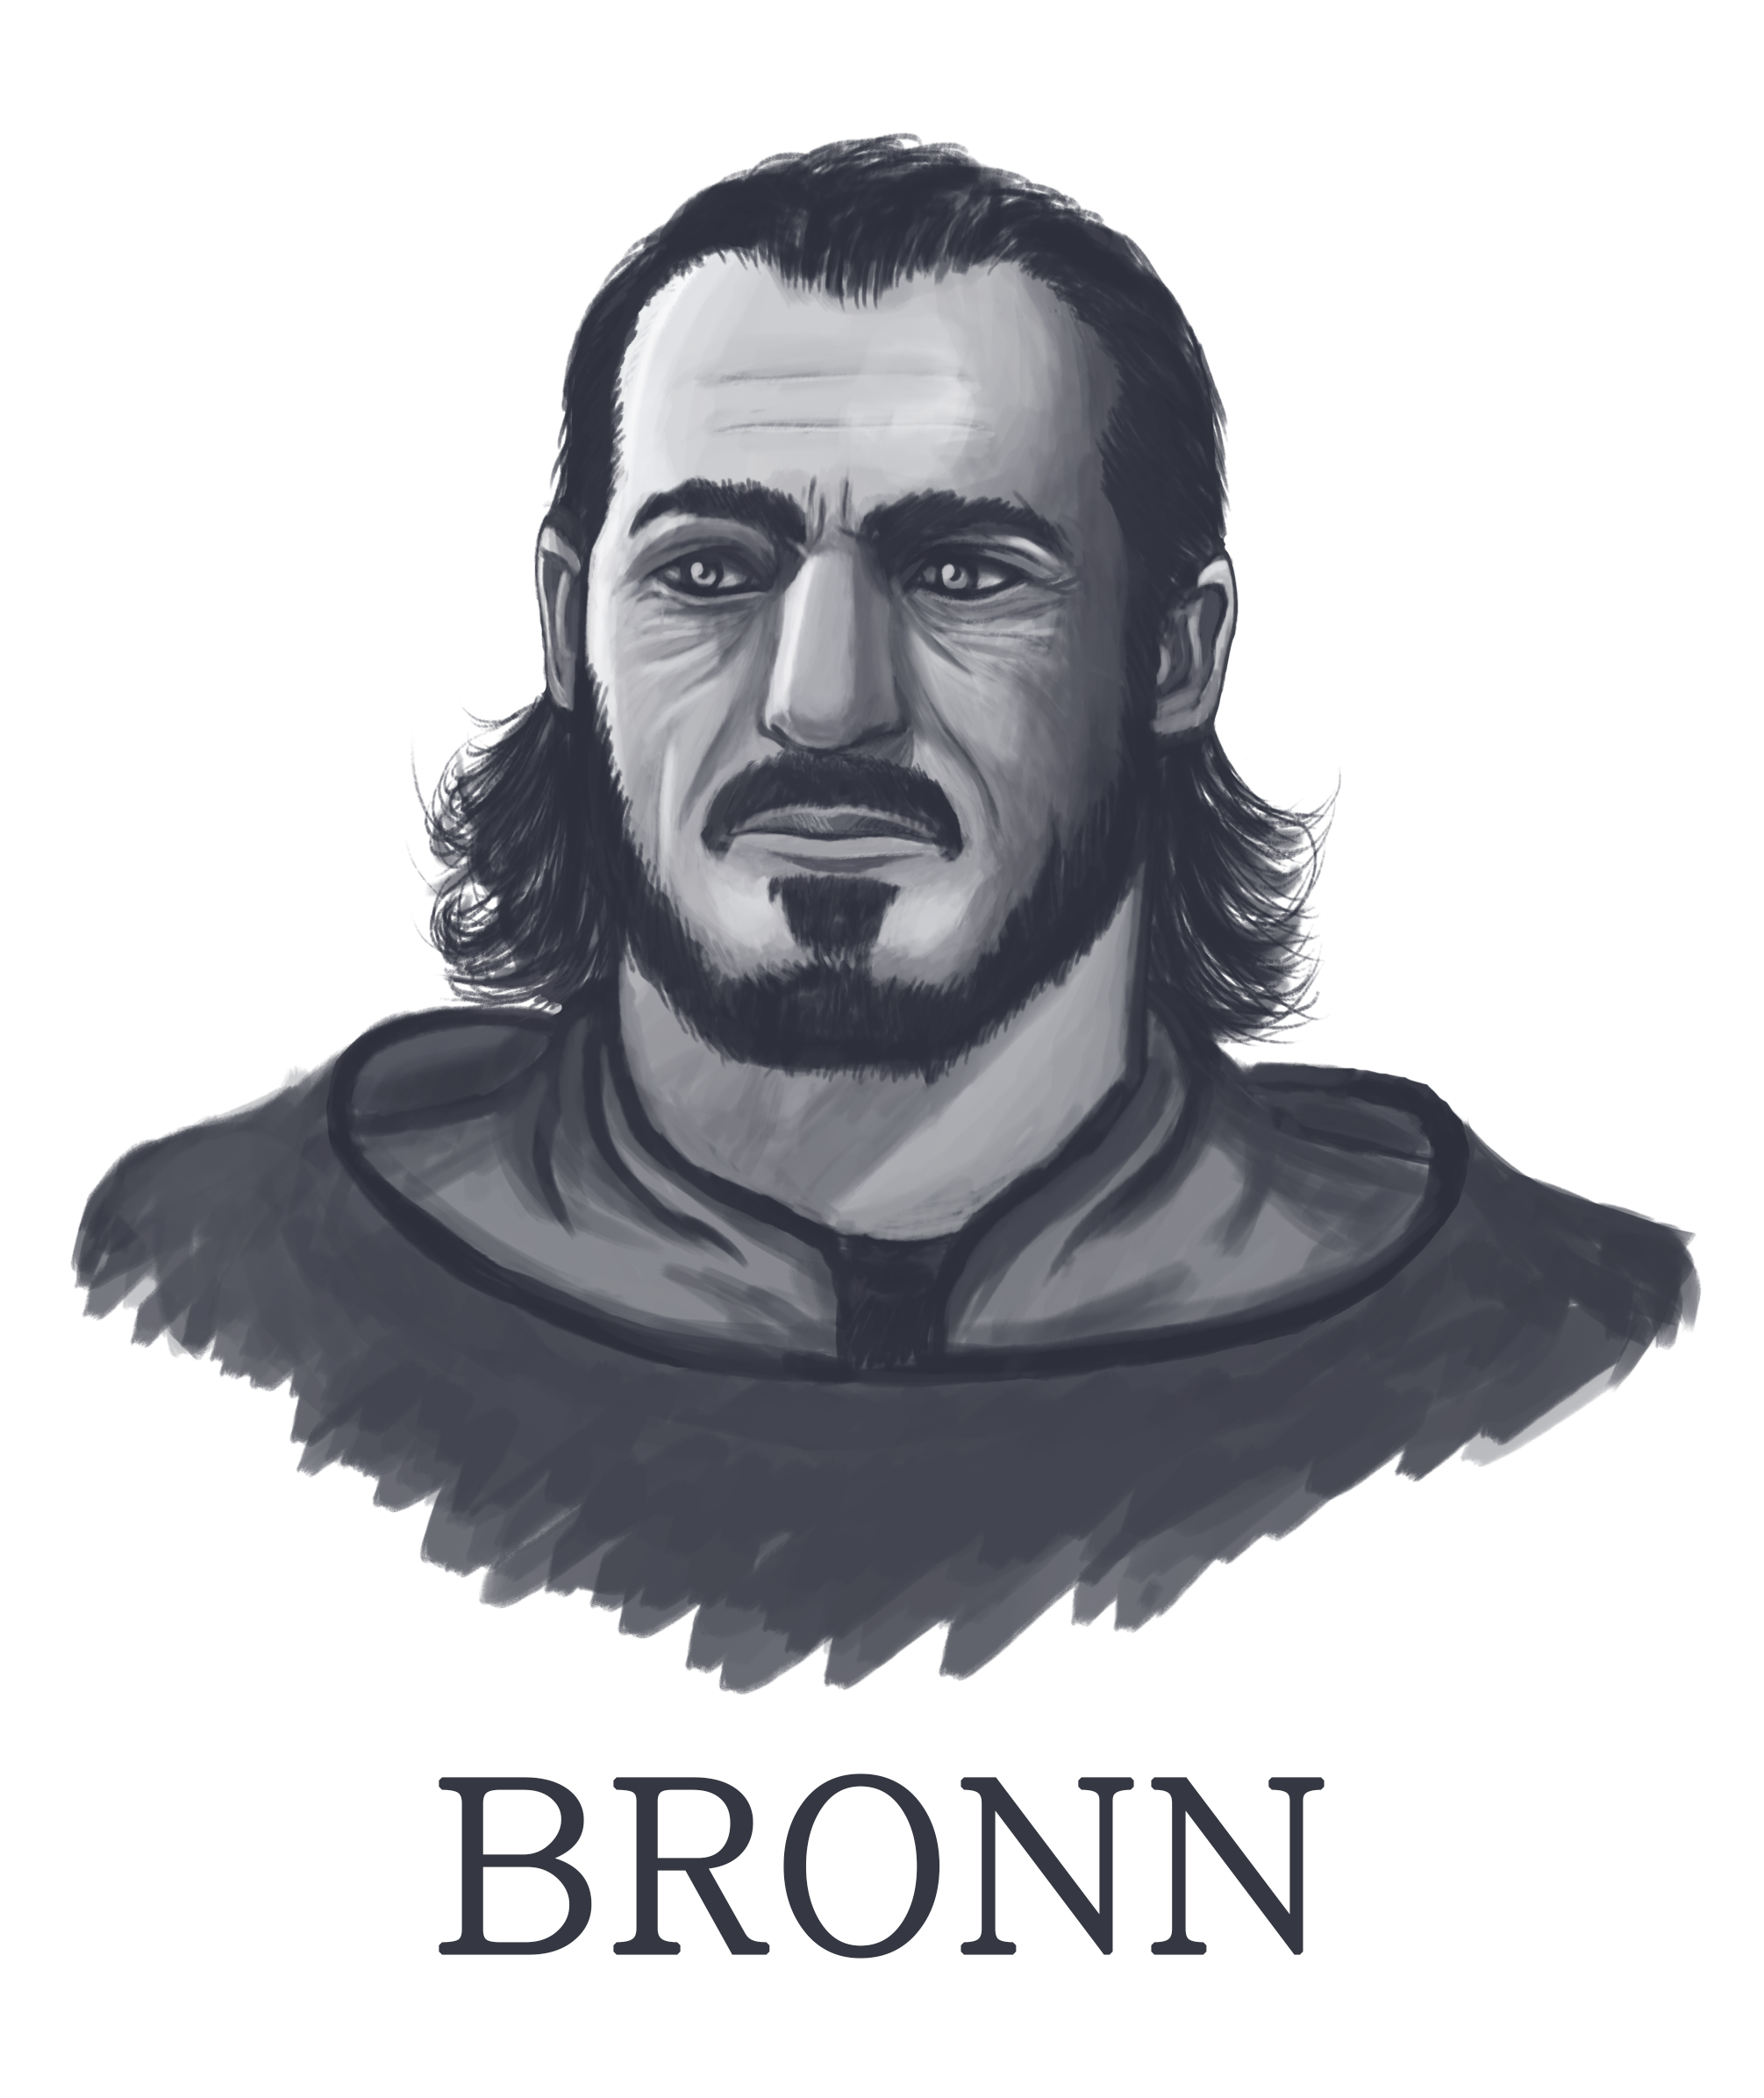 Bronn (from Game of Thrones)